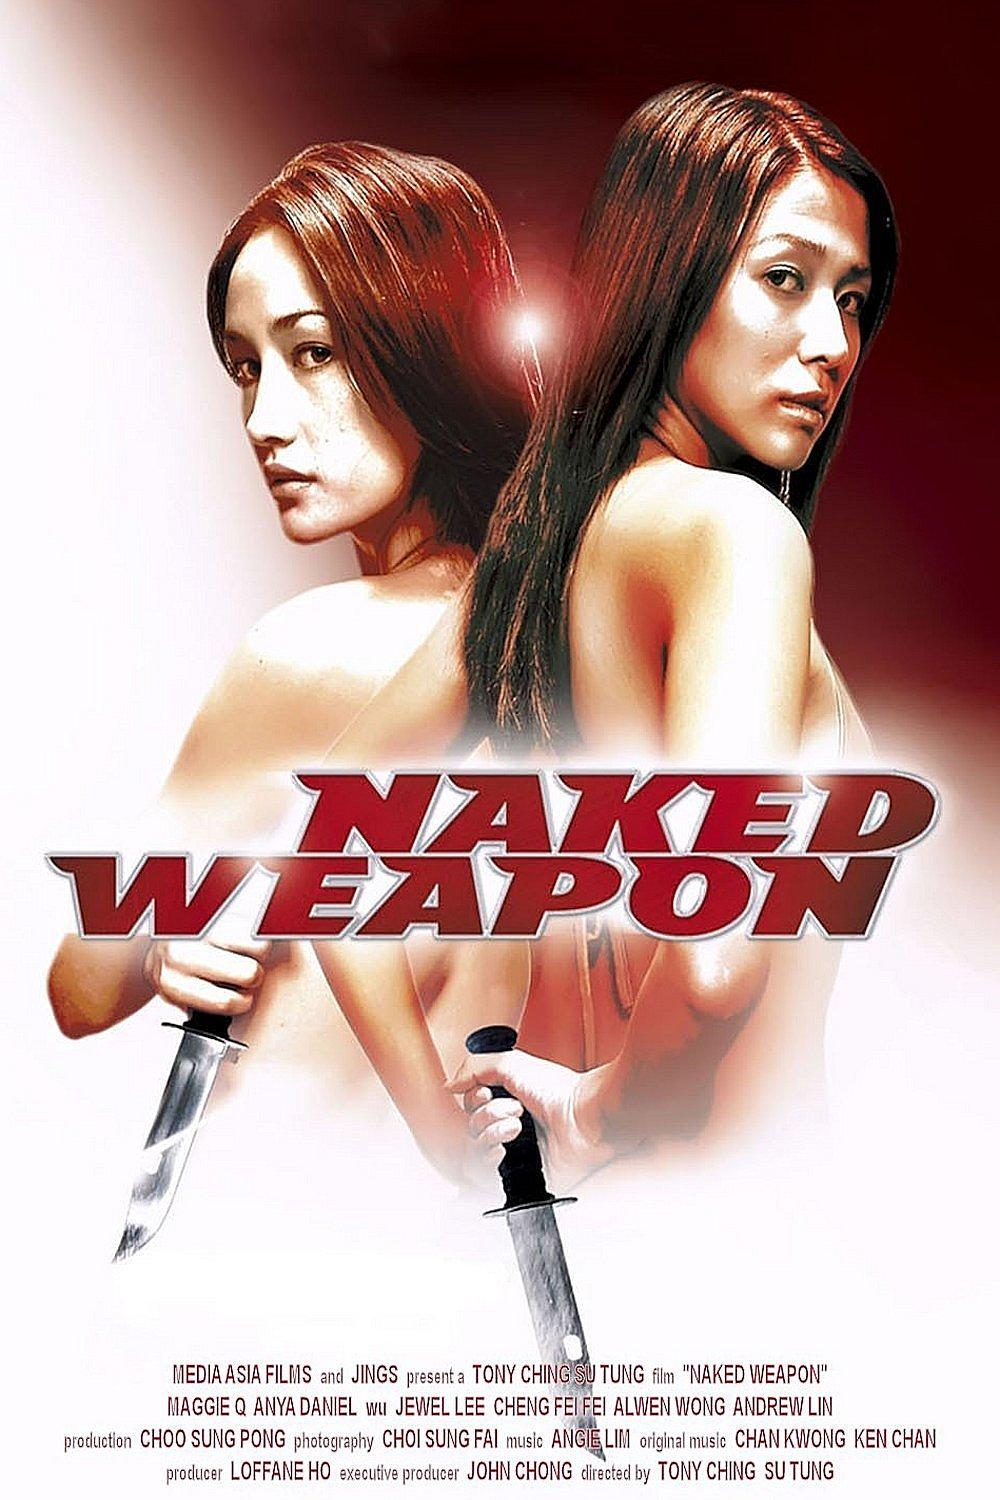 Download Naked Weapon (2002) Full Movie in Hindi Dual Audio BluRay 720p [750MB]